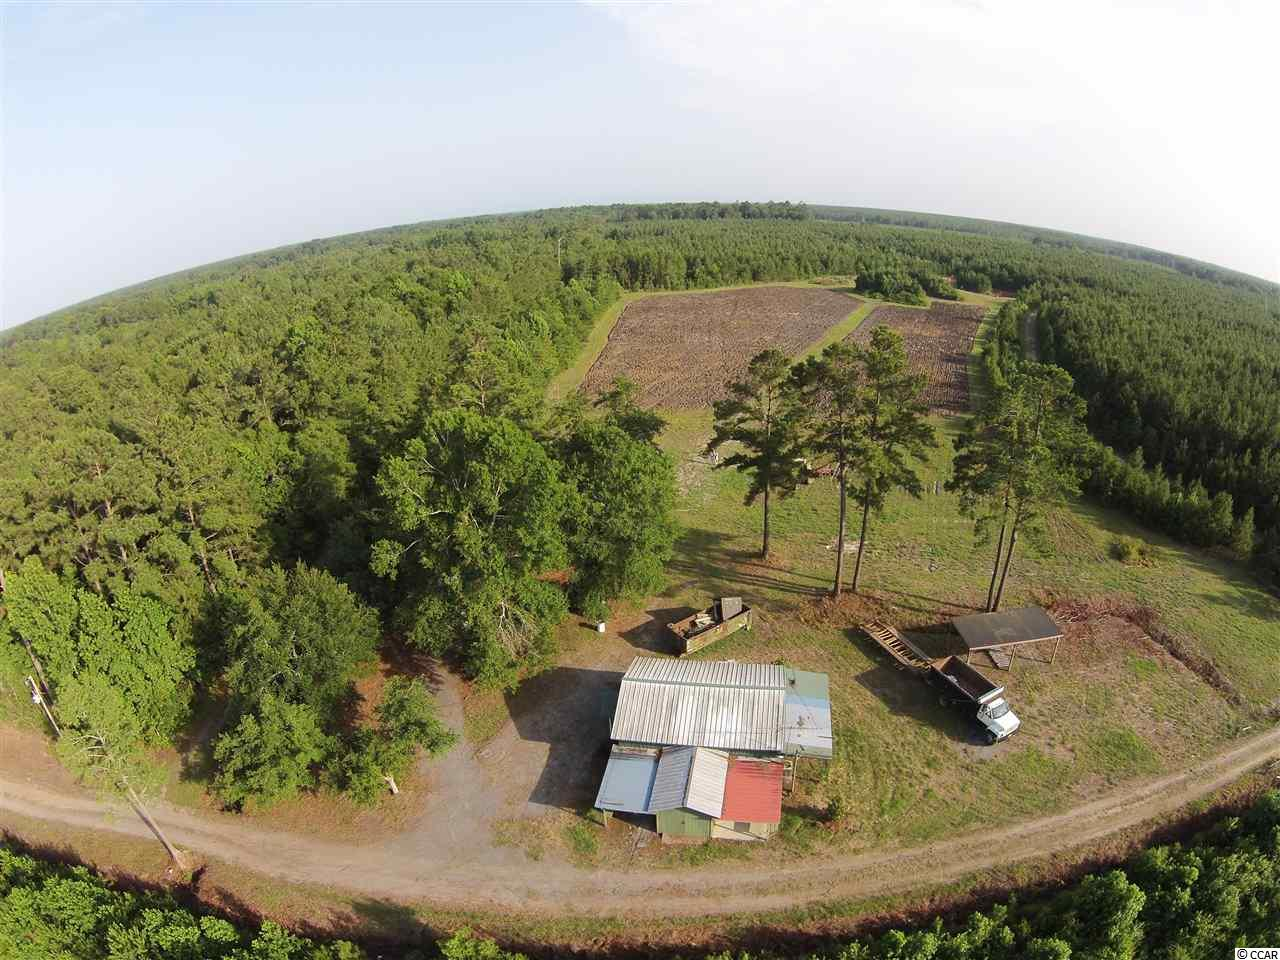 87.79 Acres (3 Adjoining Lots) off Parview Ave off Jackson Village Road of Hwy 701 N. Acreage includes Cabin, Shed, Metal Building, Pond and an abundance of Planted Pines. Perfect Recreational Tract inside of Georgetown County.